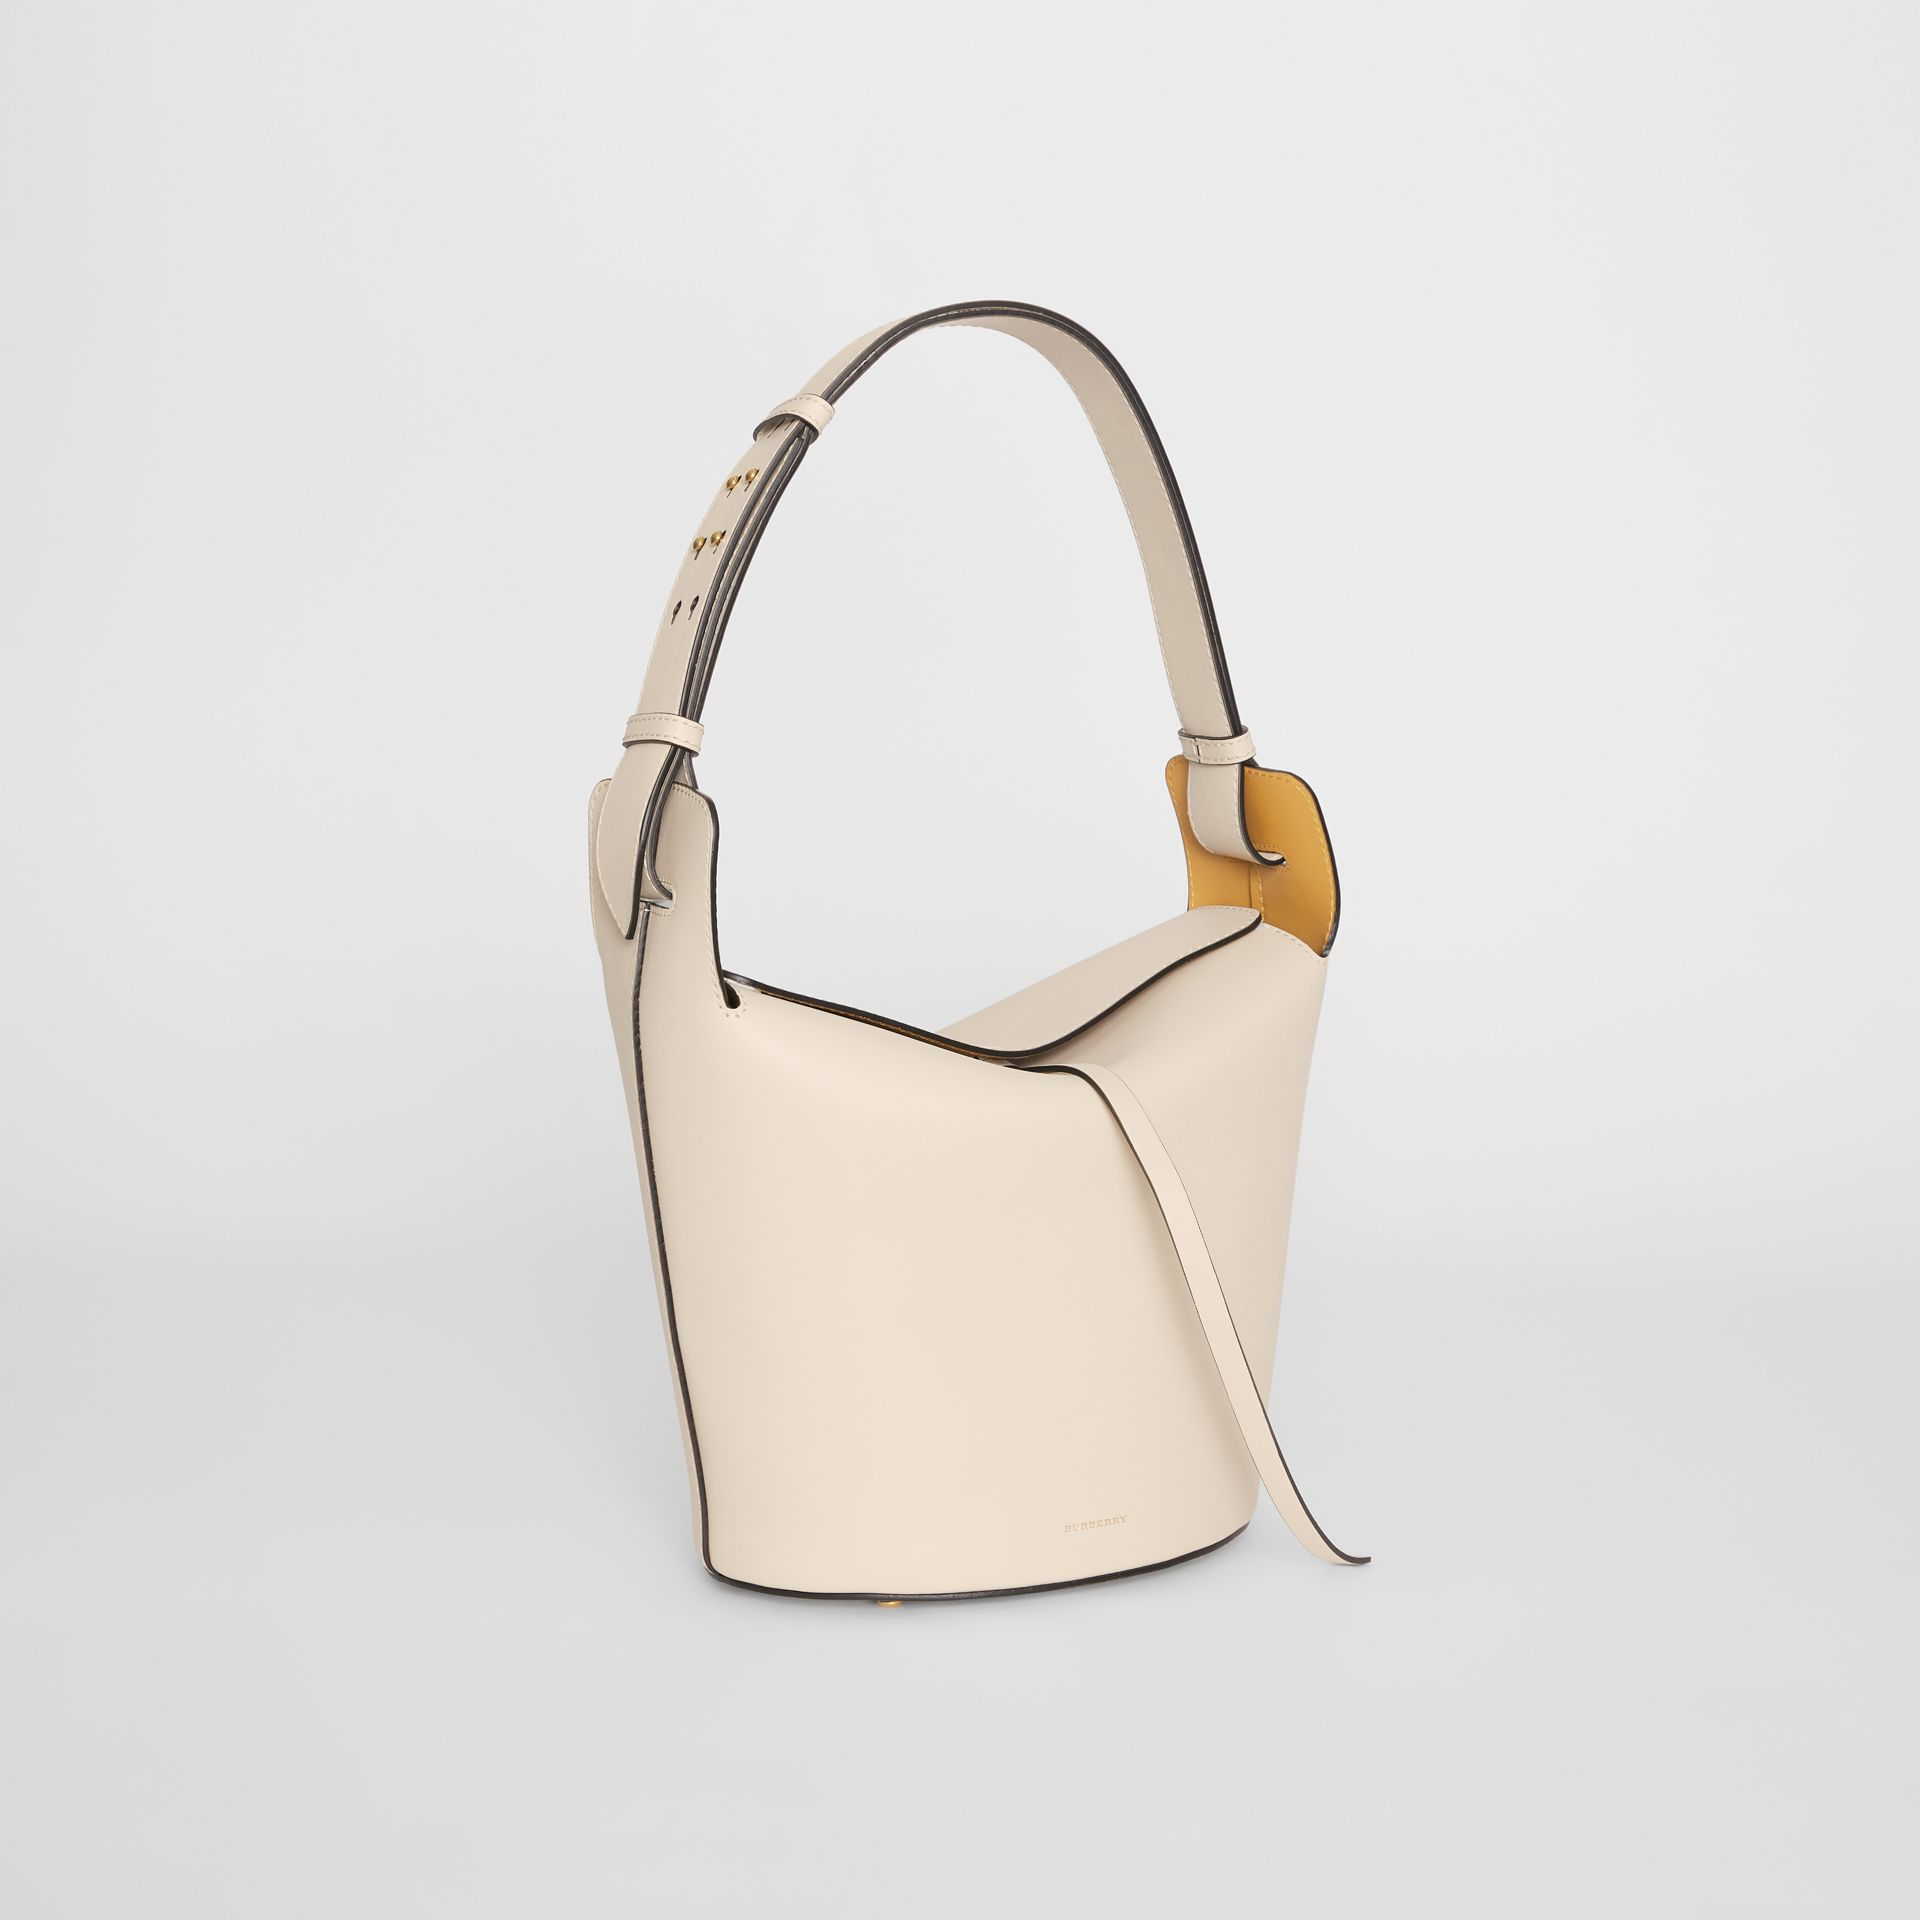 Sac The Bucket moyen en cuir (Calcaire) - Femme | Burberry Canada - photo de la galerie 6